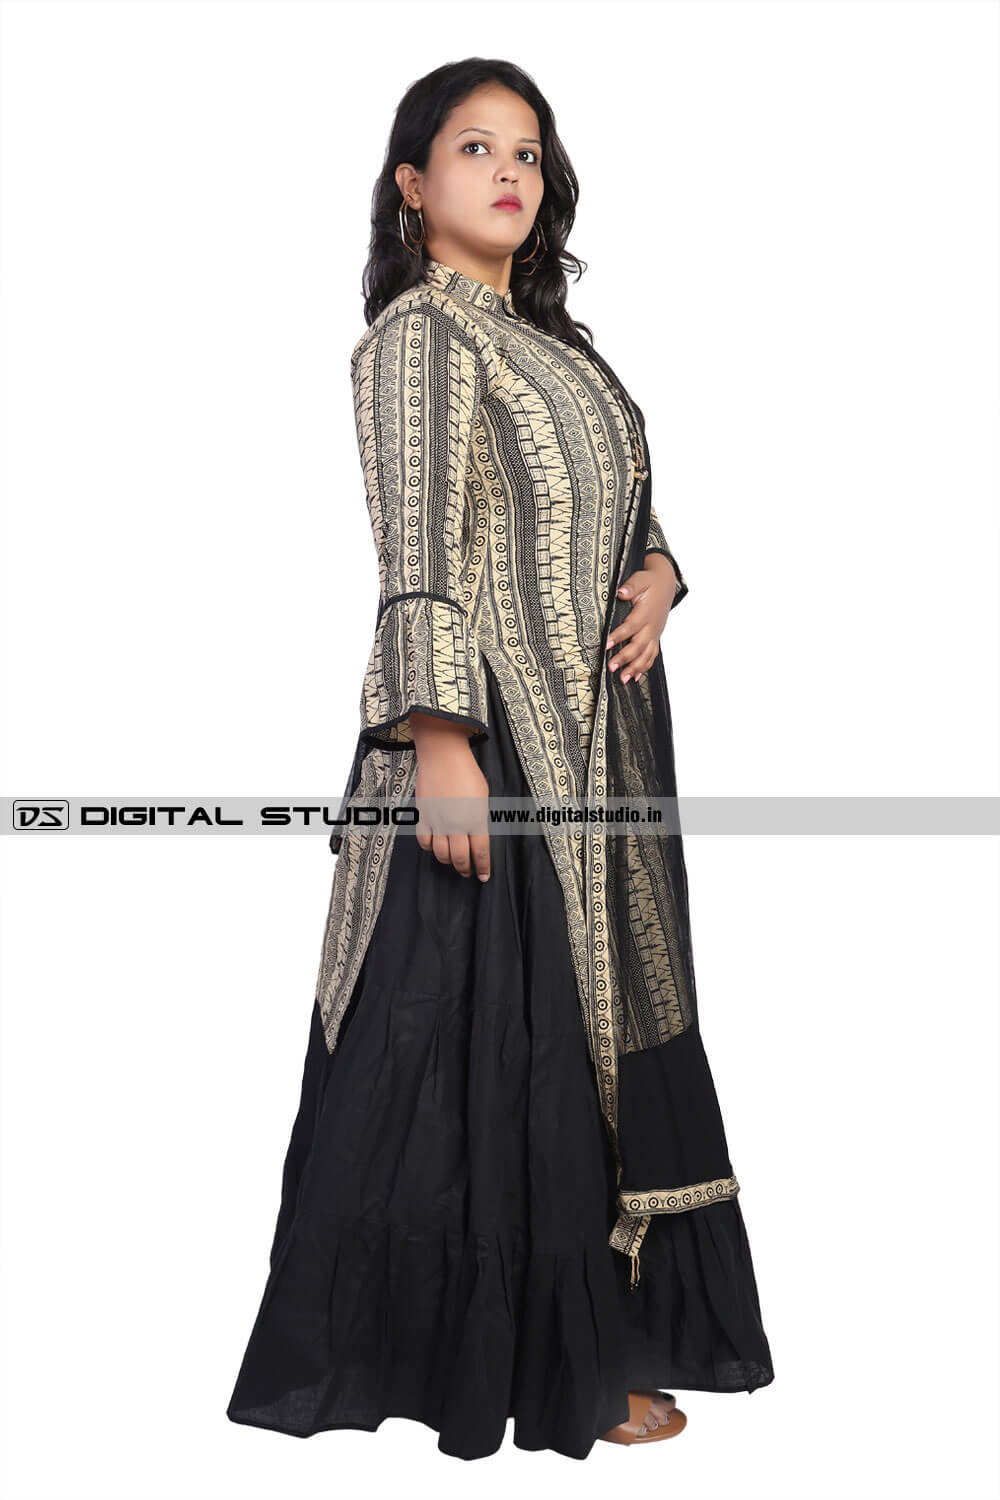 Designer Indian dress